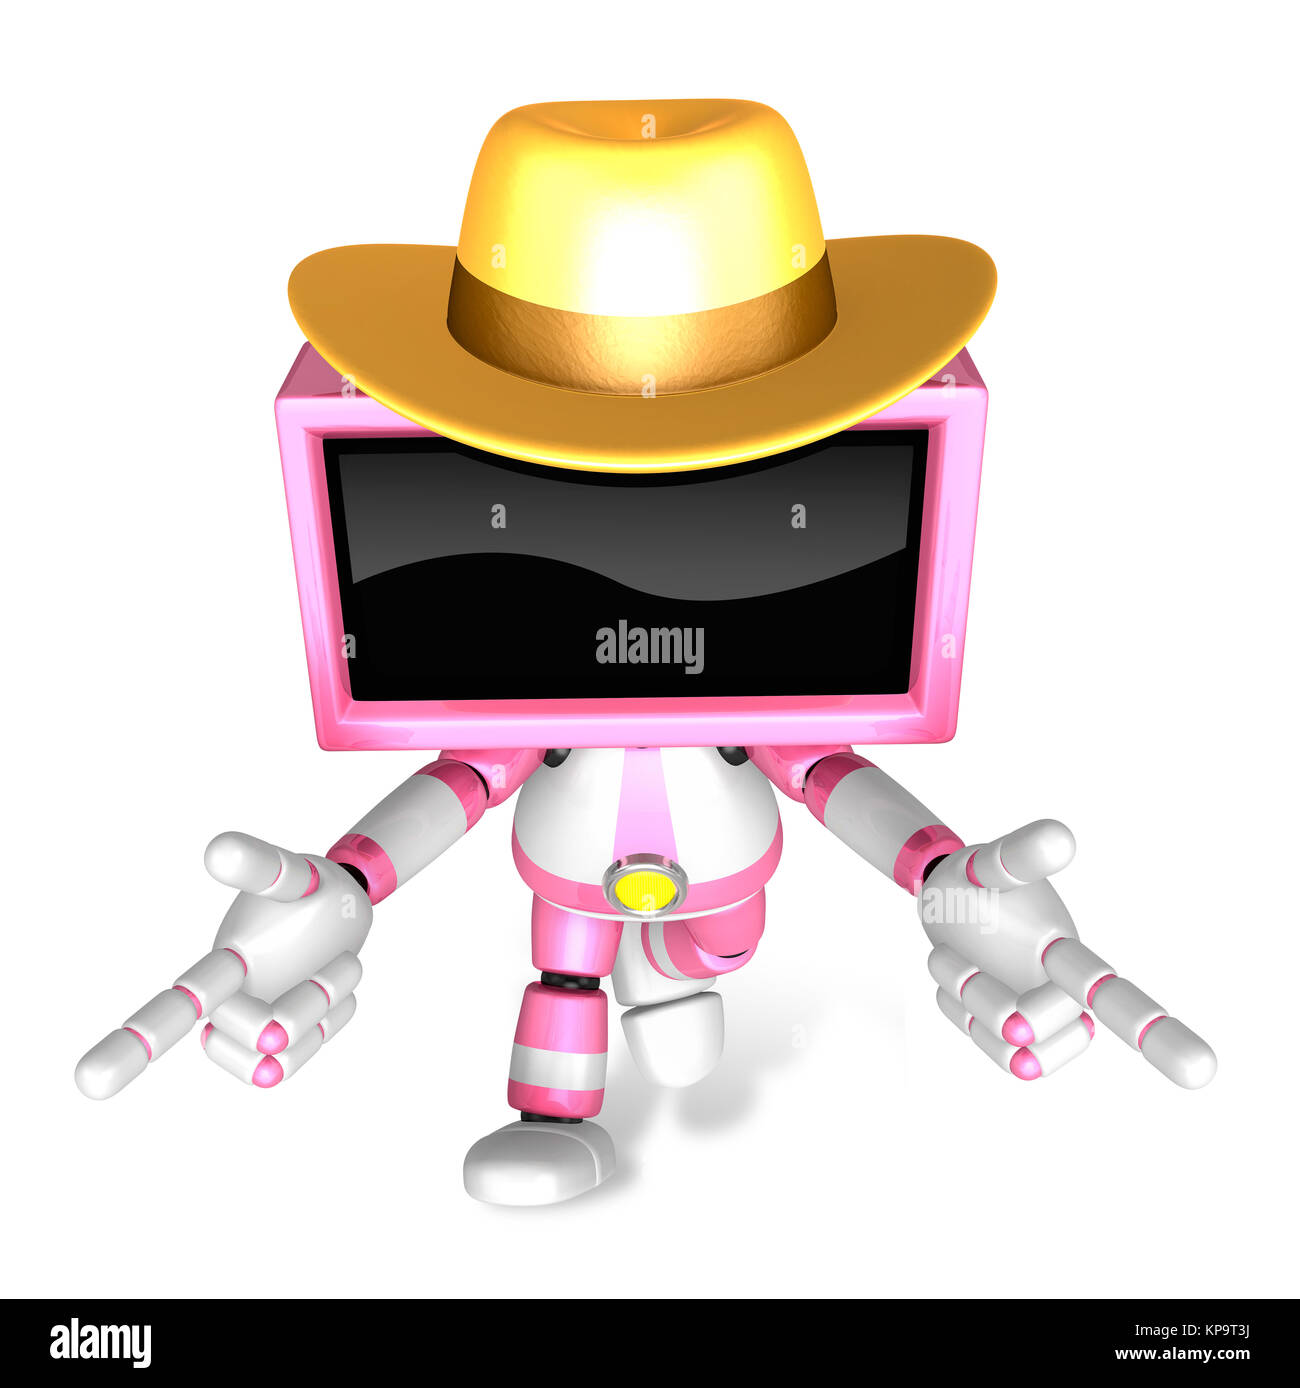 Magenta TV character are kindly guidance. Create 3D Television Robot Series. - Stock Image